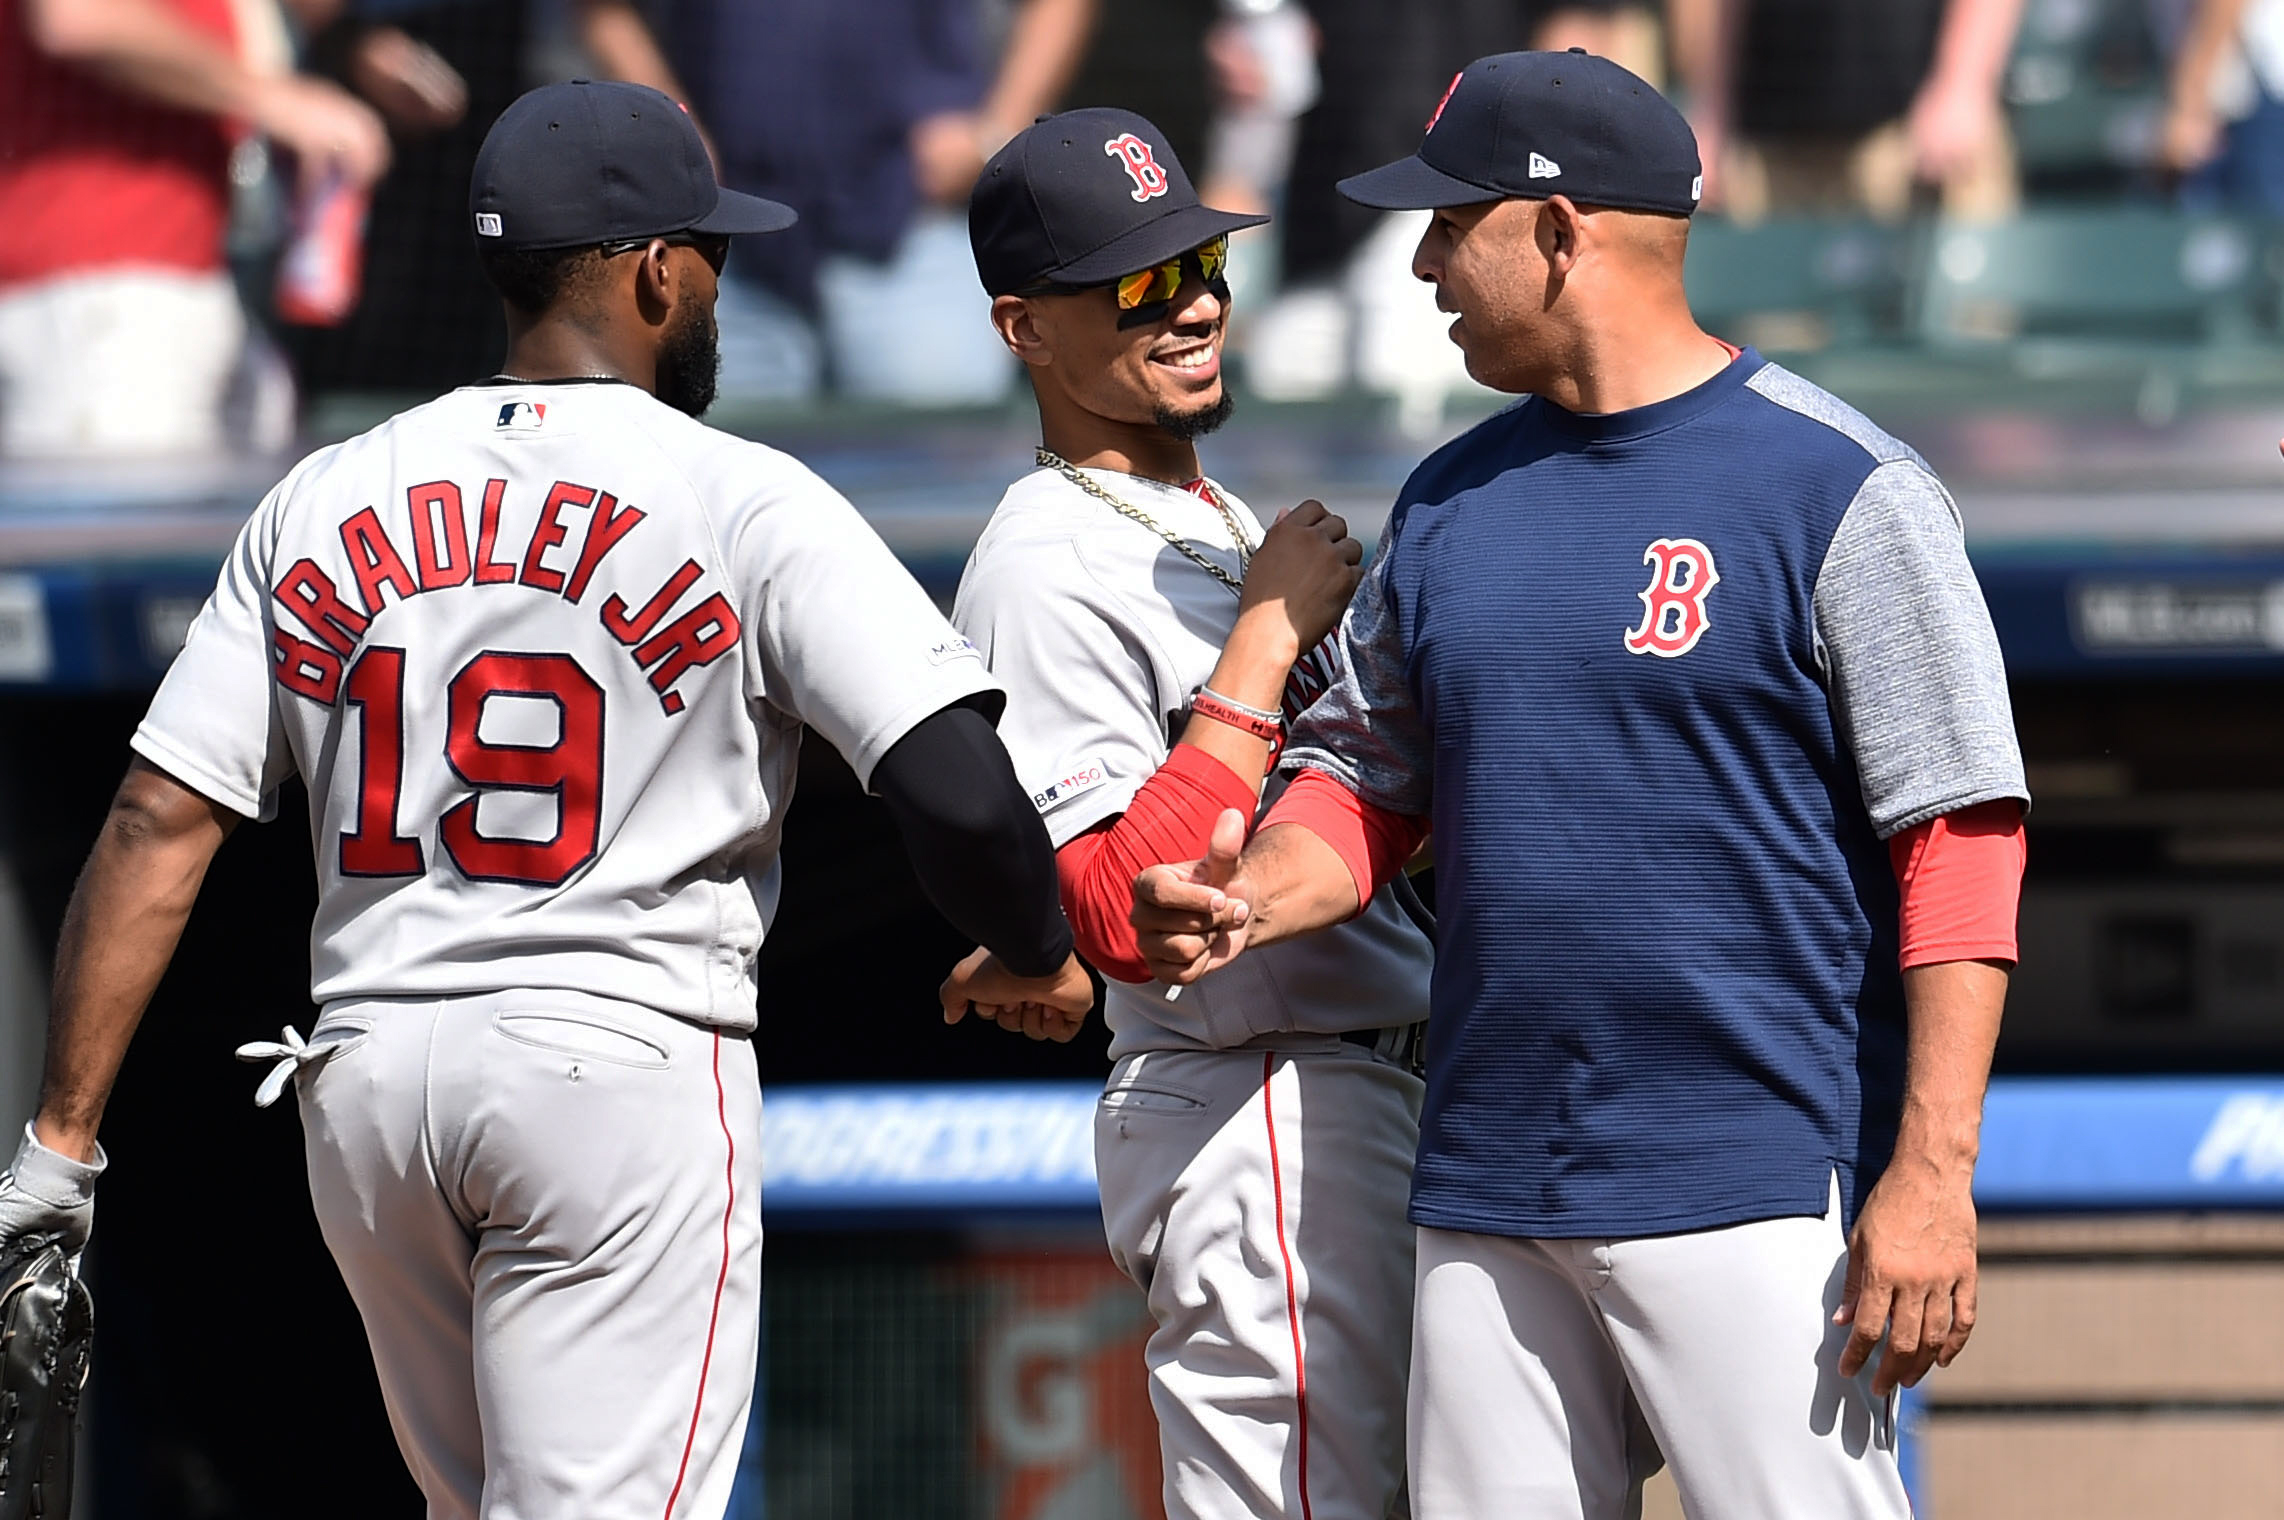 Red Sox underdogs at Fenway Park on MLB odds for Tuesday